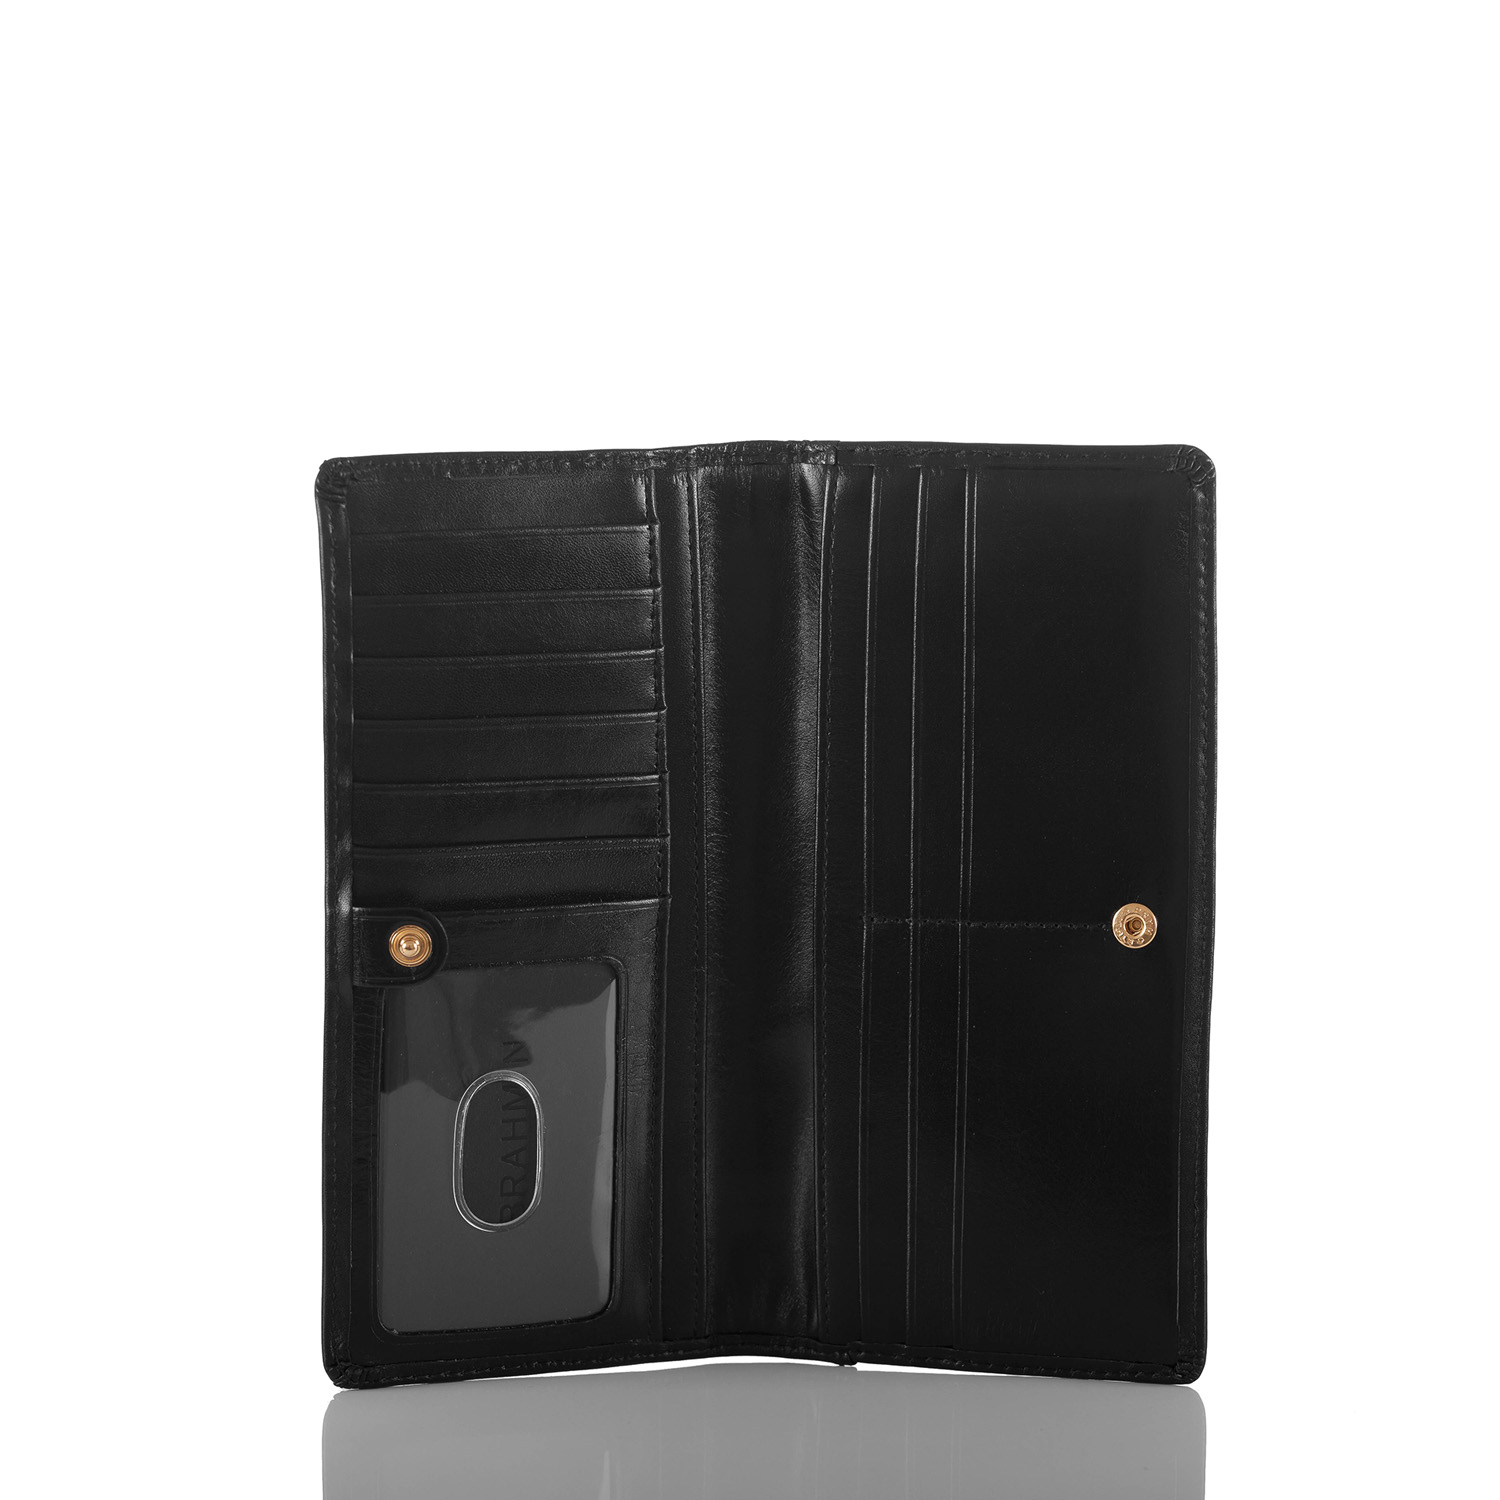 Ady Wallet Black Geneva